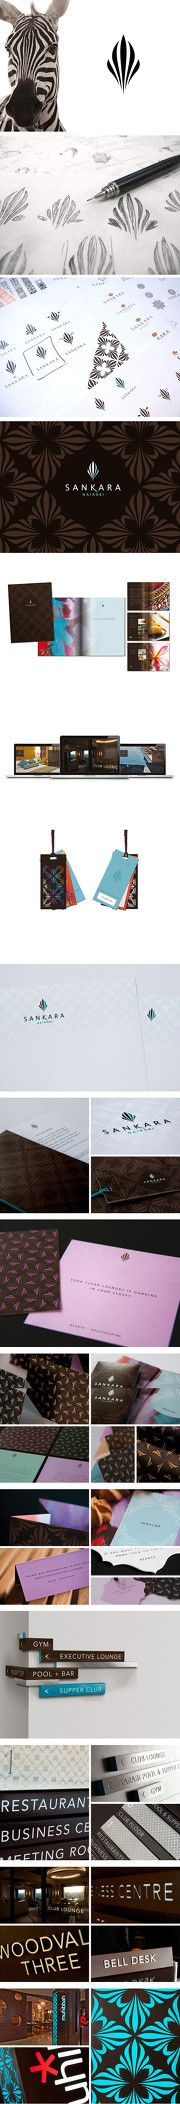 Sankara Hotel / Branding / Identity / Logo / Process / sketch / inspiration / zebra / stripes / pattern / stationery / business card / signs / signage / directions / labels / brochure / design